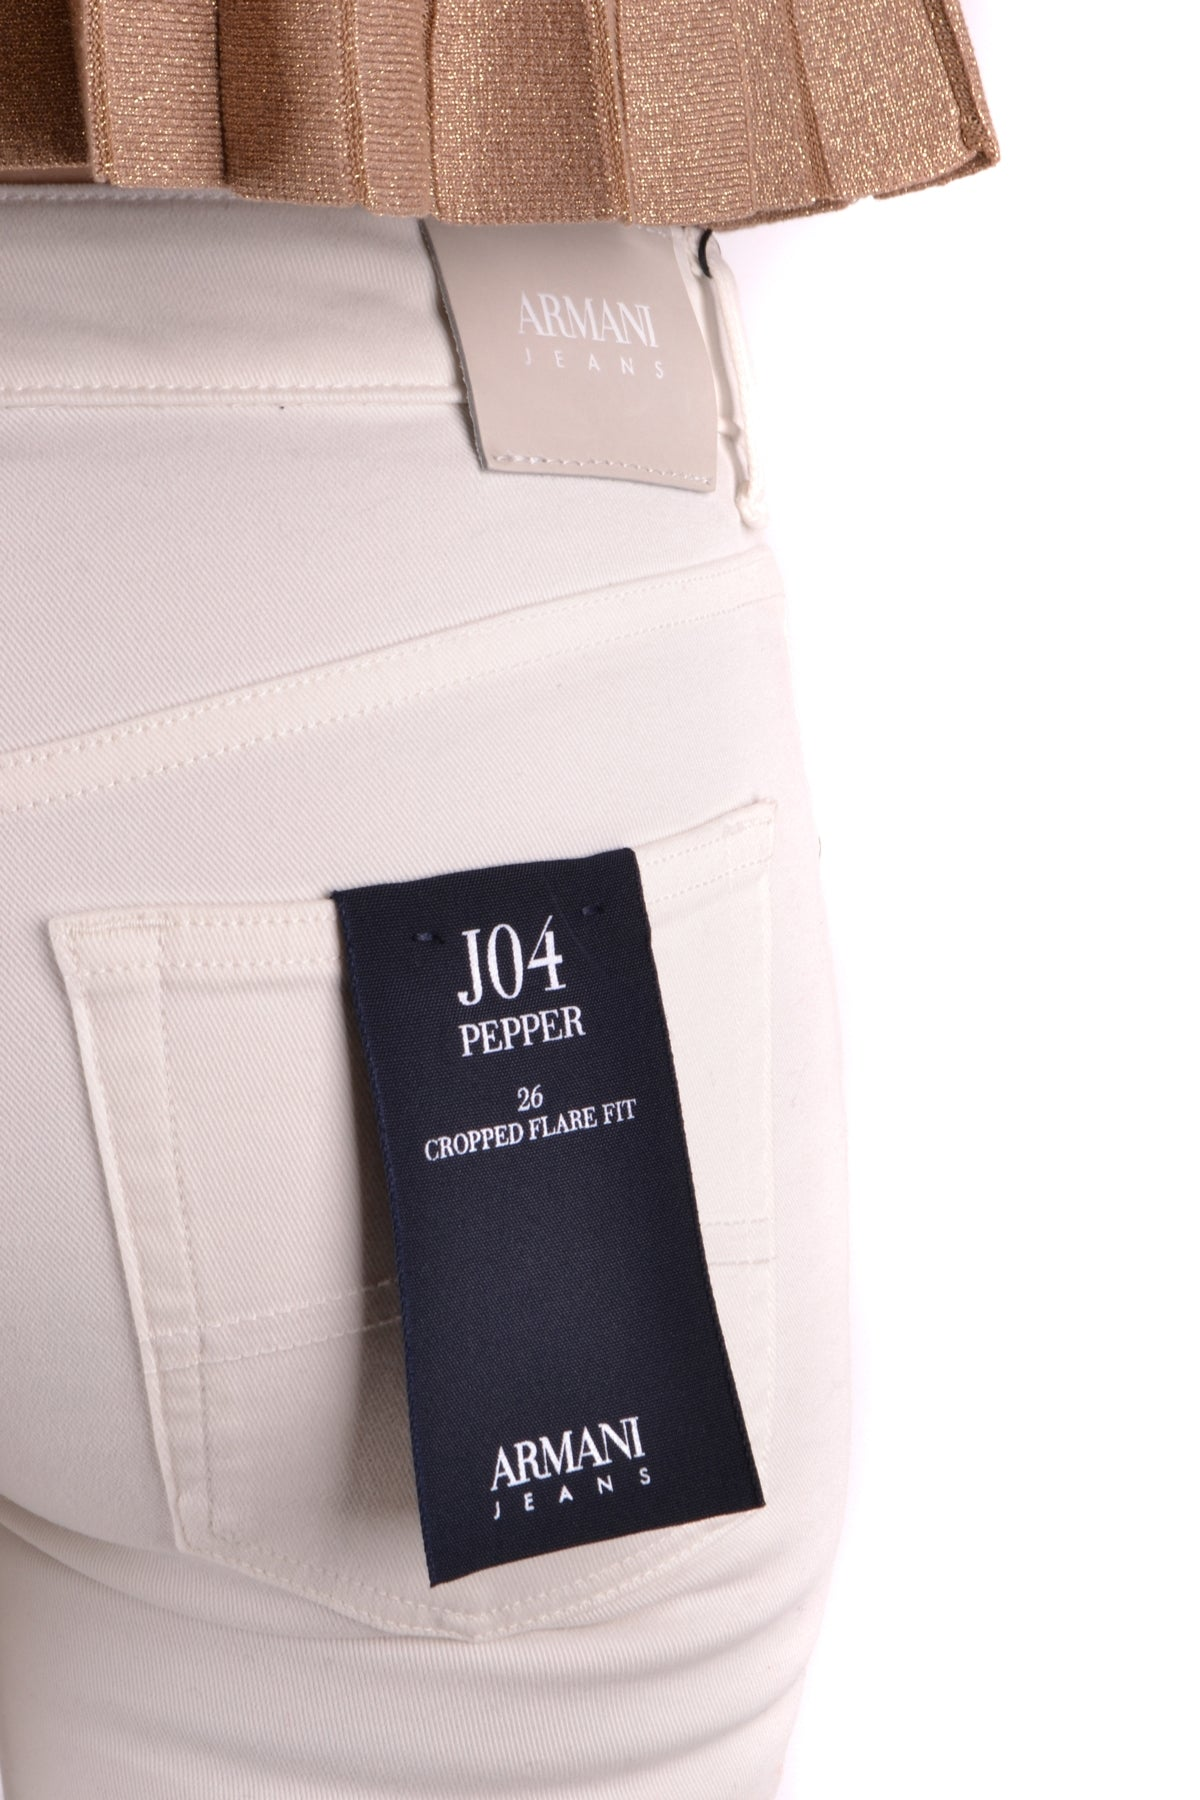 Jeans Armani Jeans-Jeans - WOMAN-Product Details Terms: New With LabelYear: 2018Main Color: WhiteGender: WomanMade In: RomaniaManufacturer Part Number: 6Y5J04 5N2FzSize: UsSeason: Spring / SummerClothing Type: JeansComposition: Cotton 98%, Elastane 2%-Keyomi-Sook